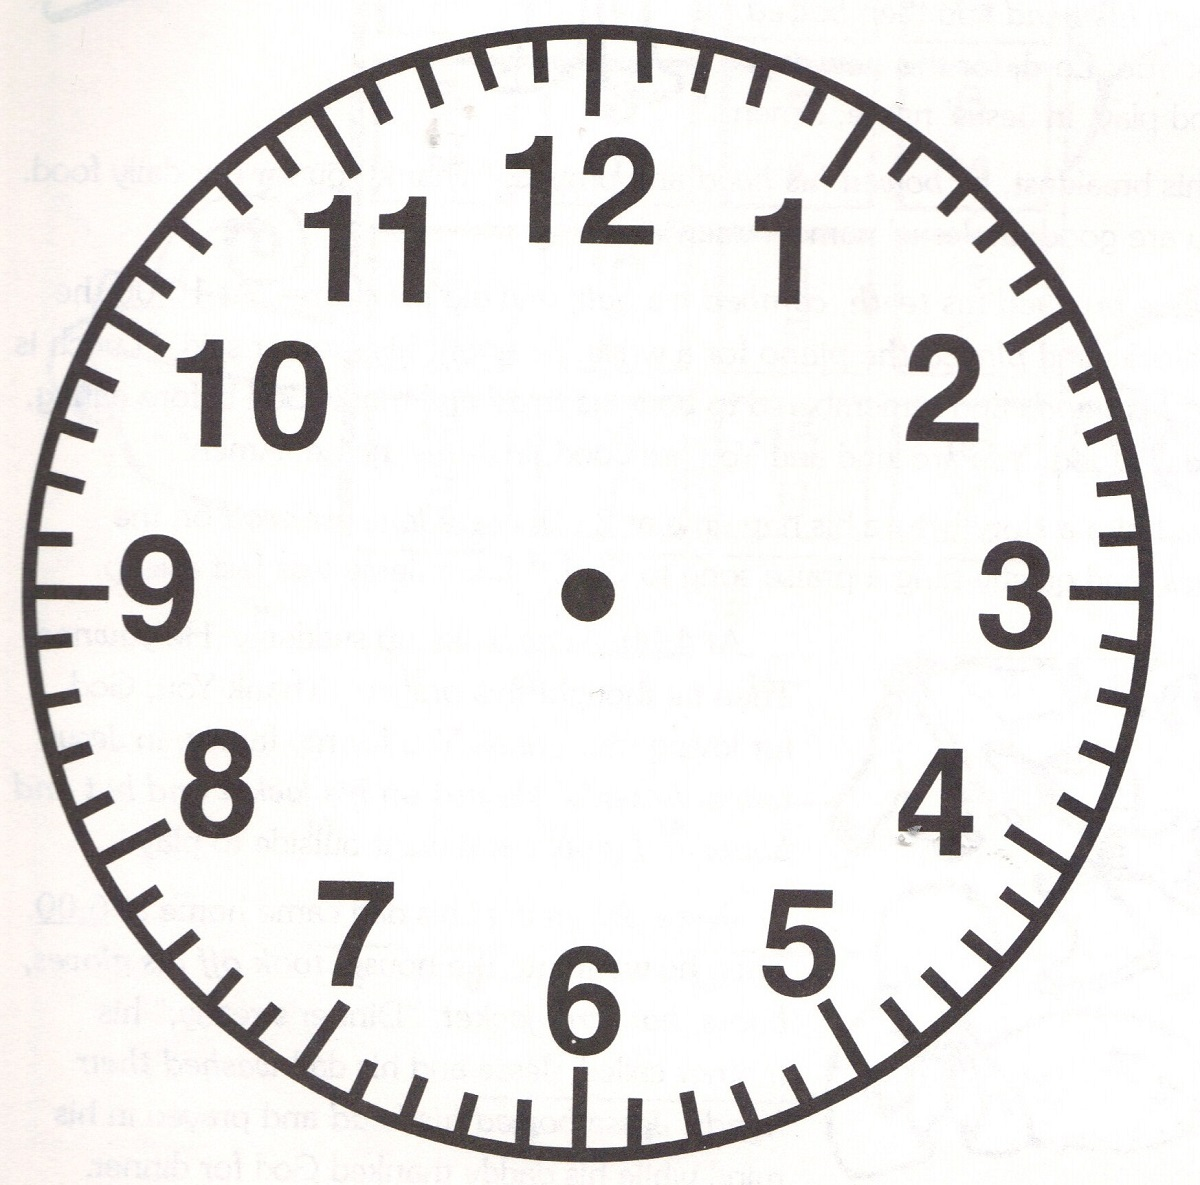 clock face image simple